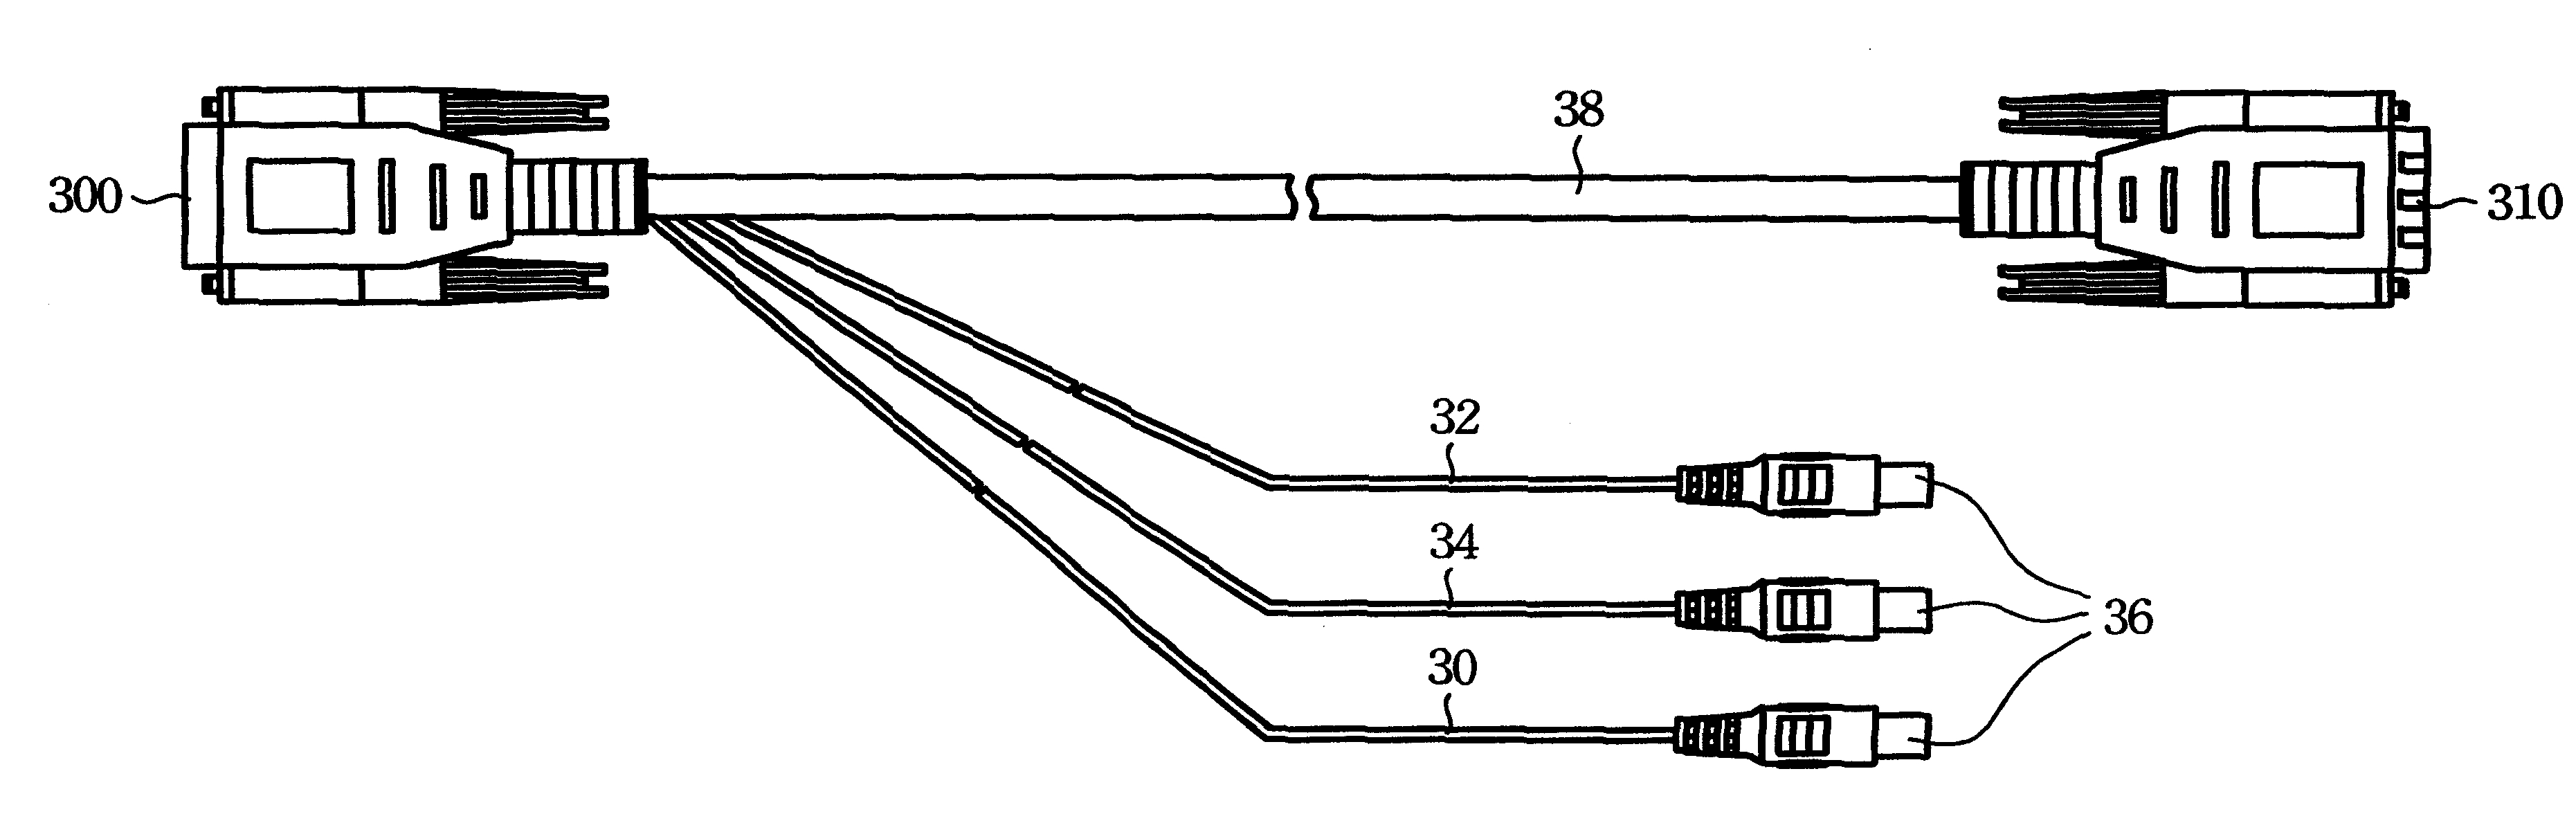 A V To Usb Wiring Schematic | Manual E-Books - Rca To Usb Converter Wiring Diagram